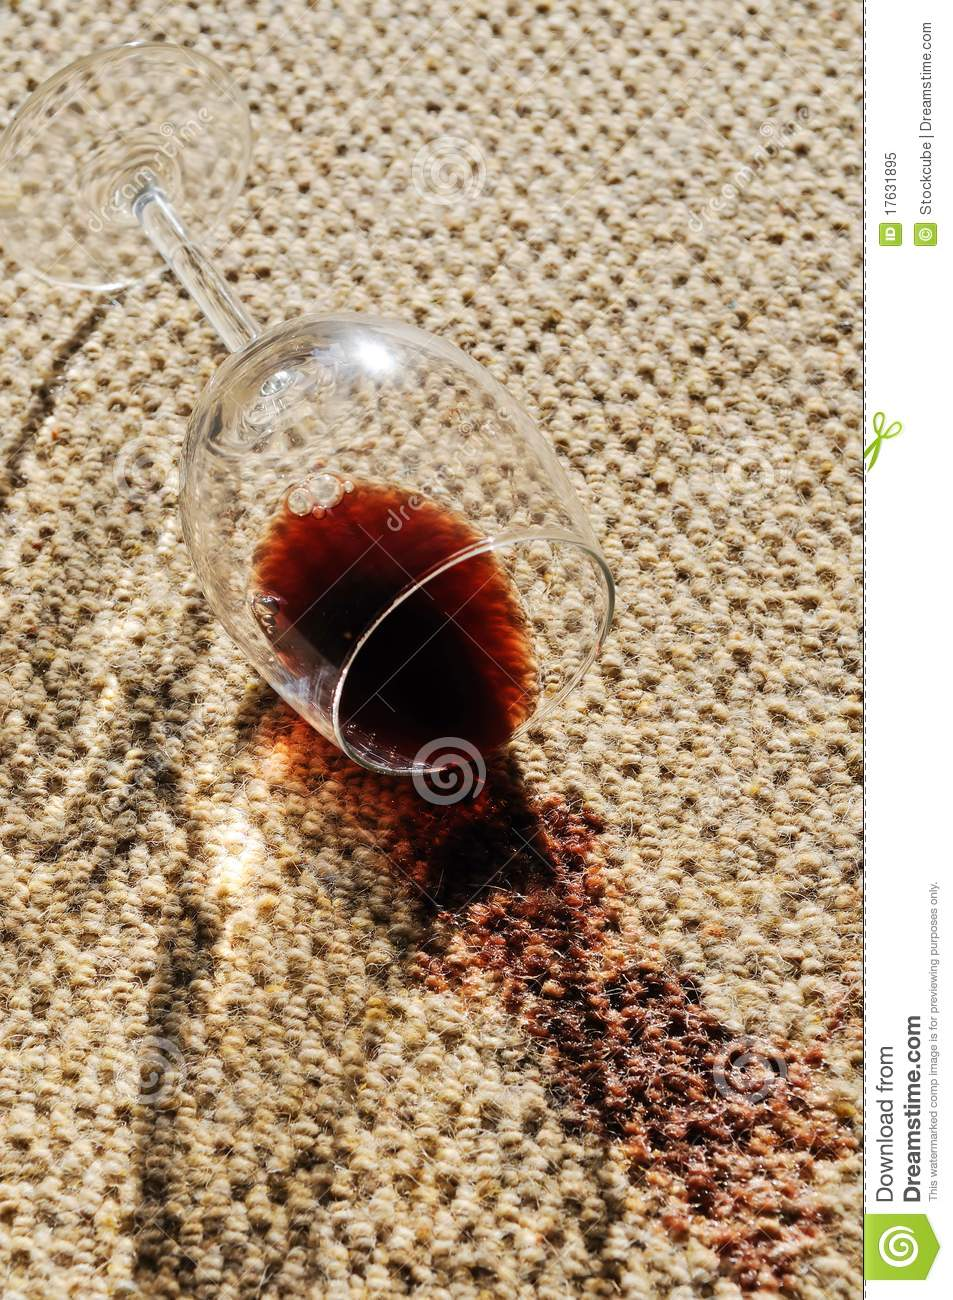 Wine Spill On A Wool Carpet Stock Image - Image: 17631895